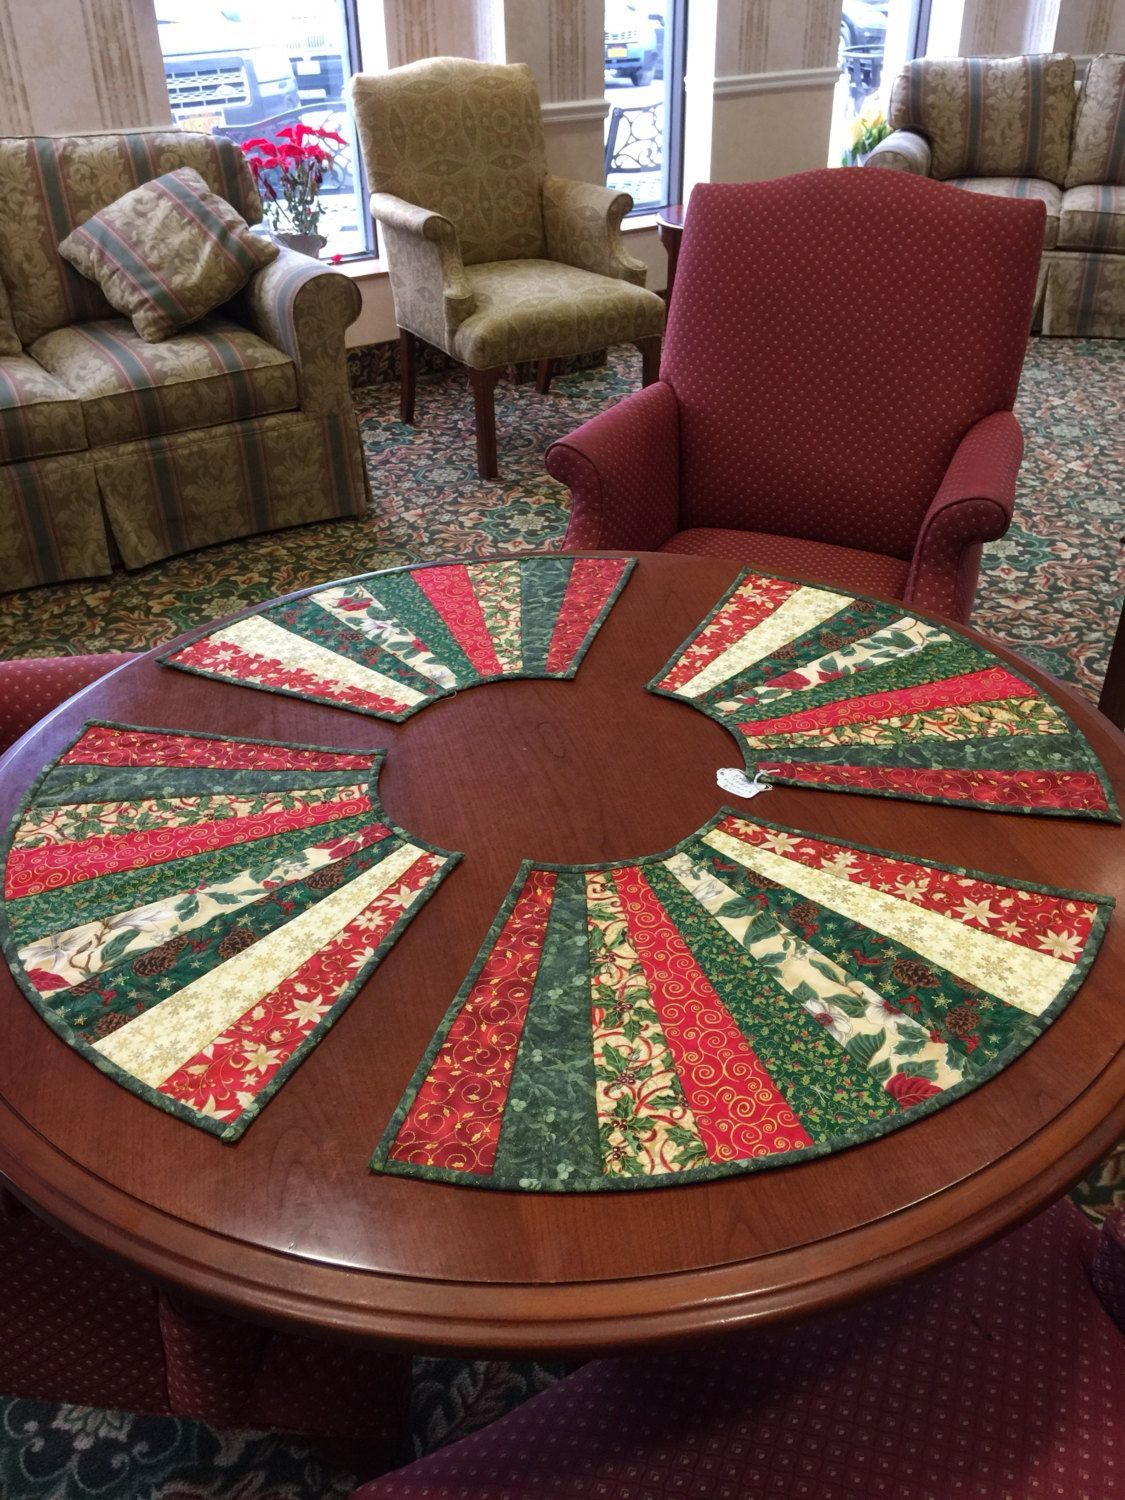 Placemats For Round Table Quilted Christmas By Bellamisaboutique On Etsy